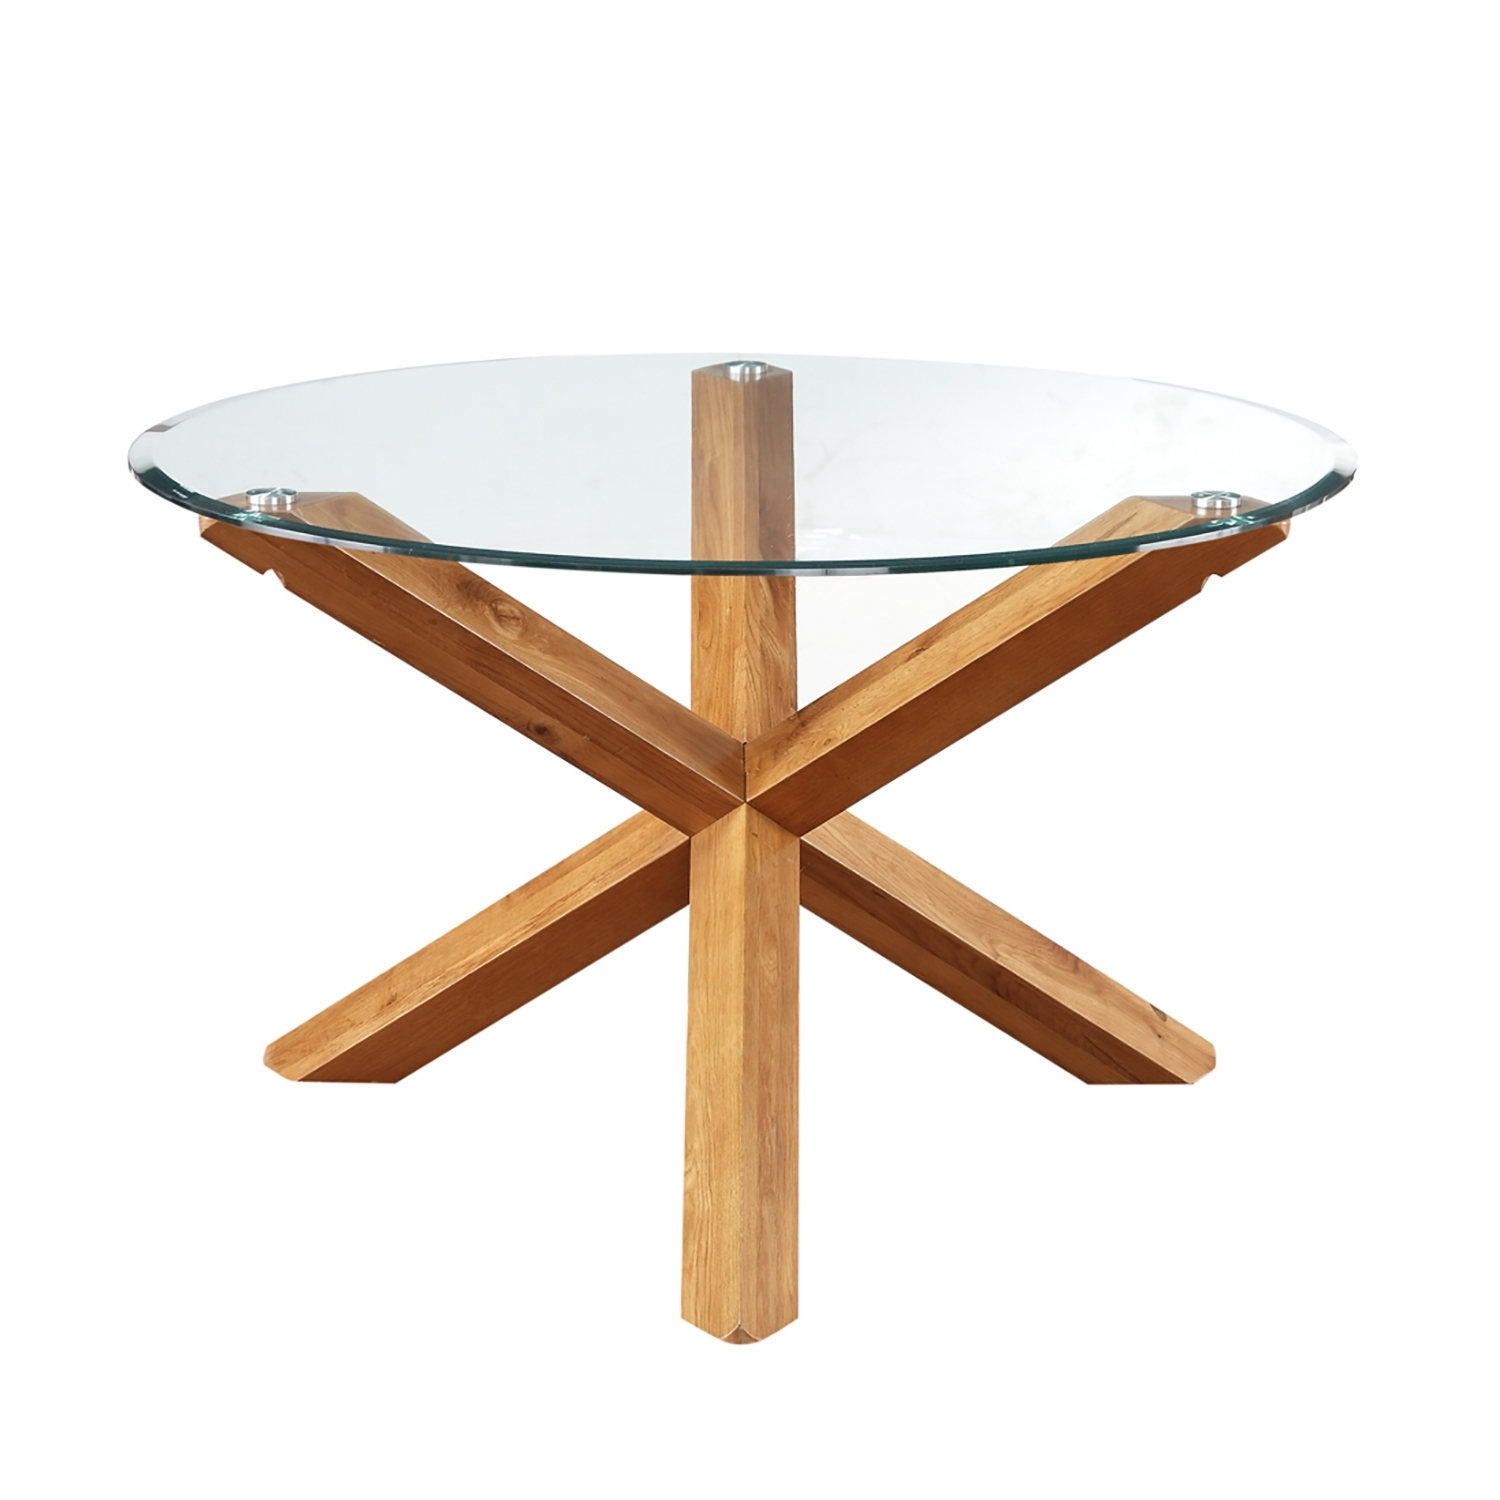 Best And Newest Glass Dining Tables With Oak Legs With Regard To Miso Solid Oak And Glass Dining Table (View 2 of 25)